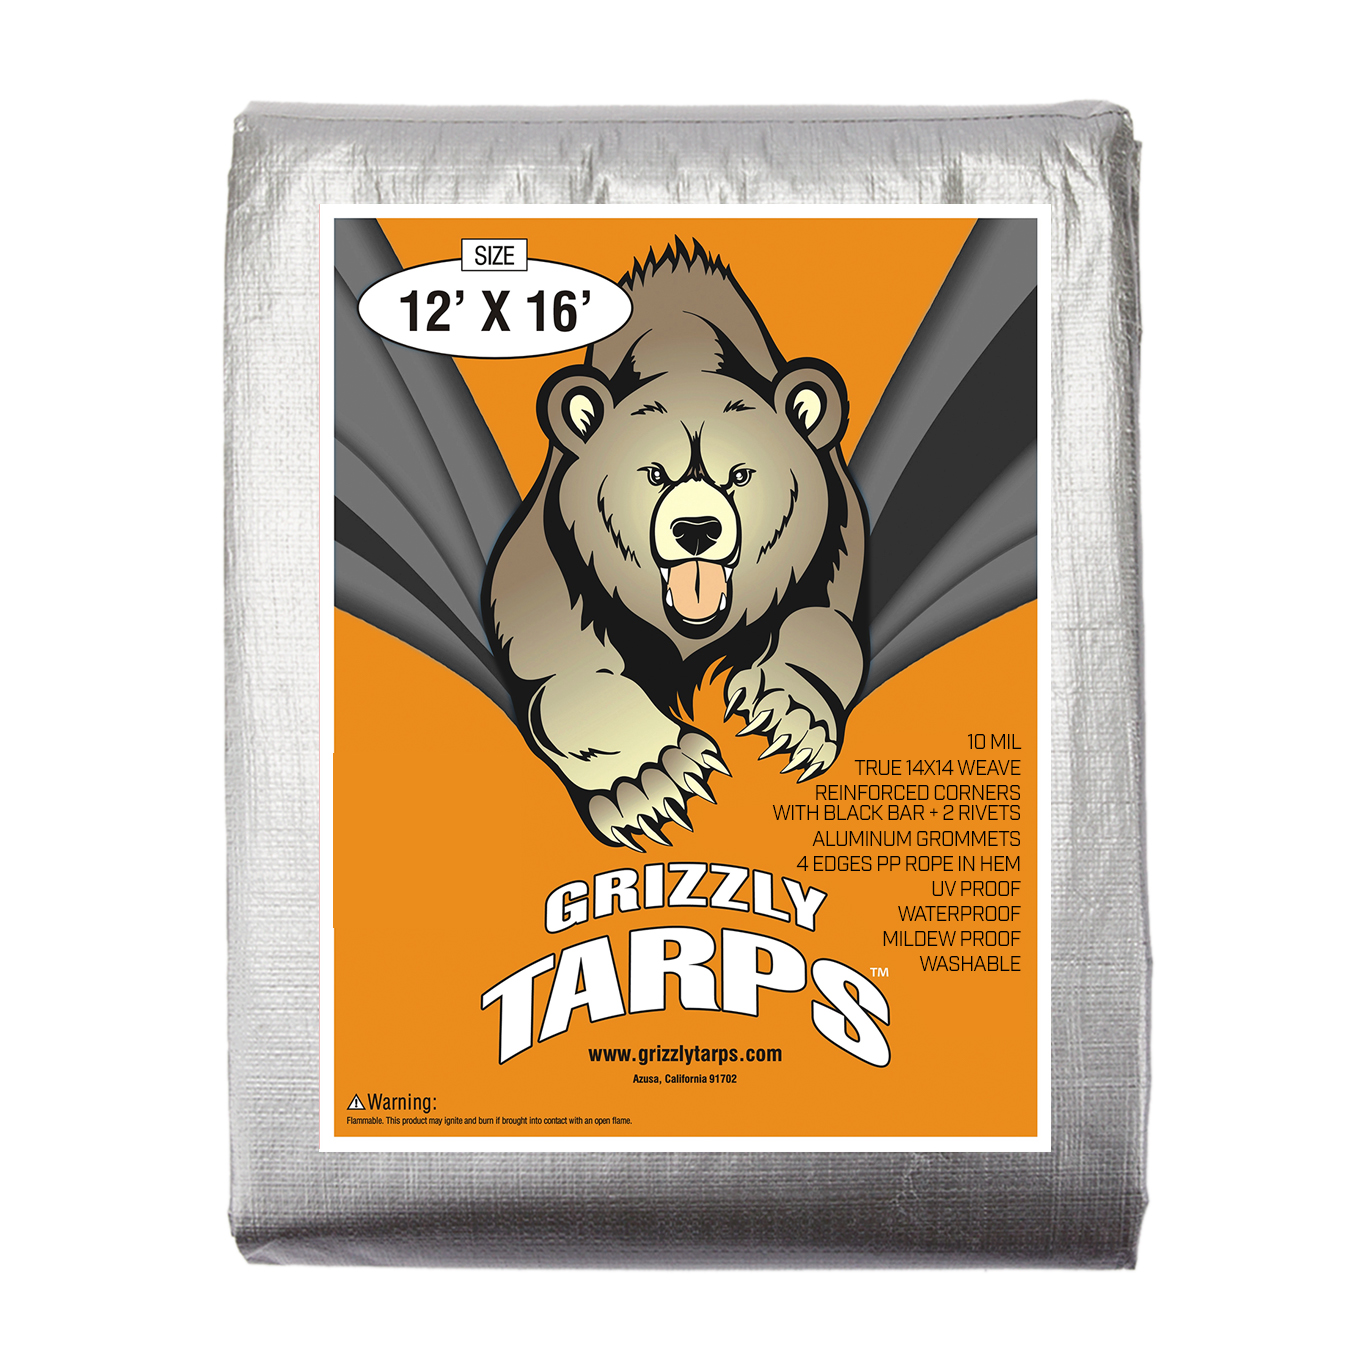 Grizzly Tarps 12 x 16 Feet Silver Heavy Duty Multi Purpose Waterproof Poly Tarp Cover 10 Mil Thick 14 x 14 Weave